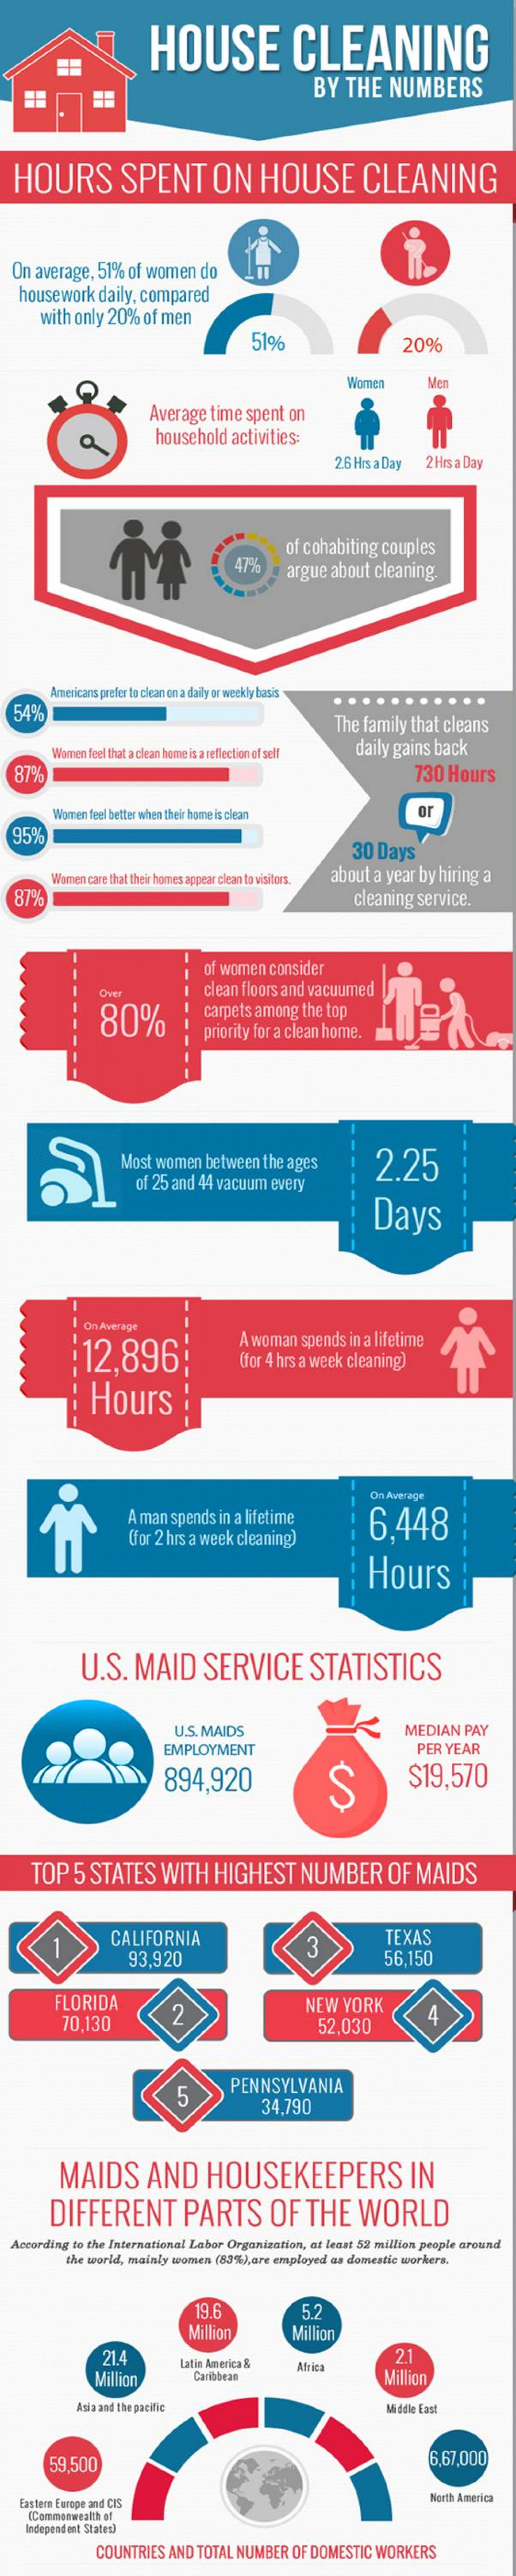 House Cleaning Statistics Infographic